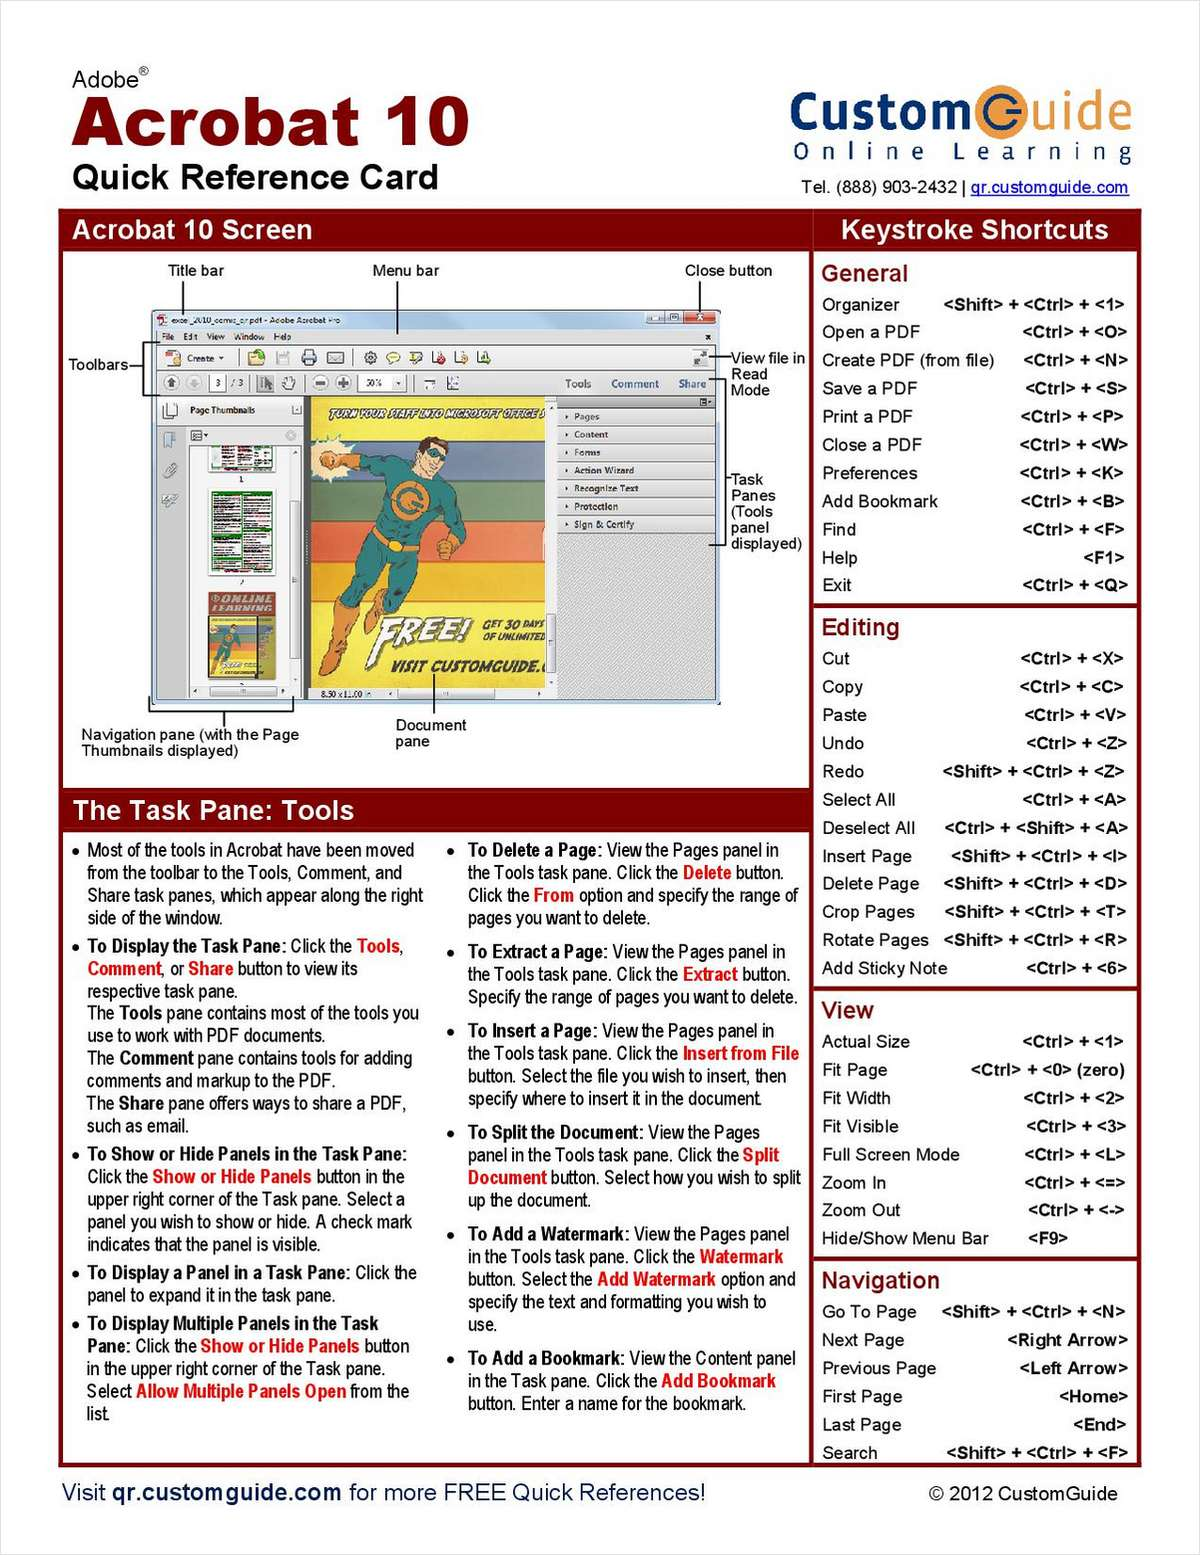 Adobe Acrobat 10 - Free Quick Reference Card